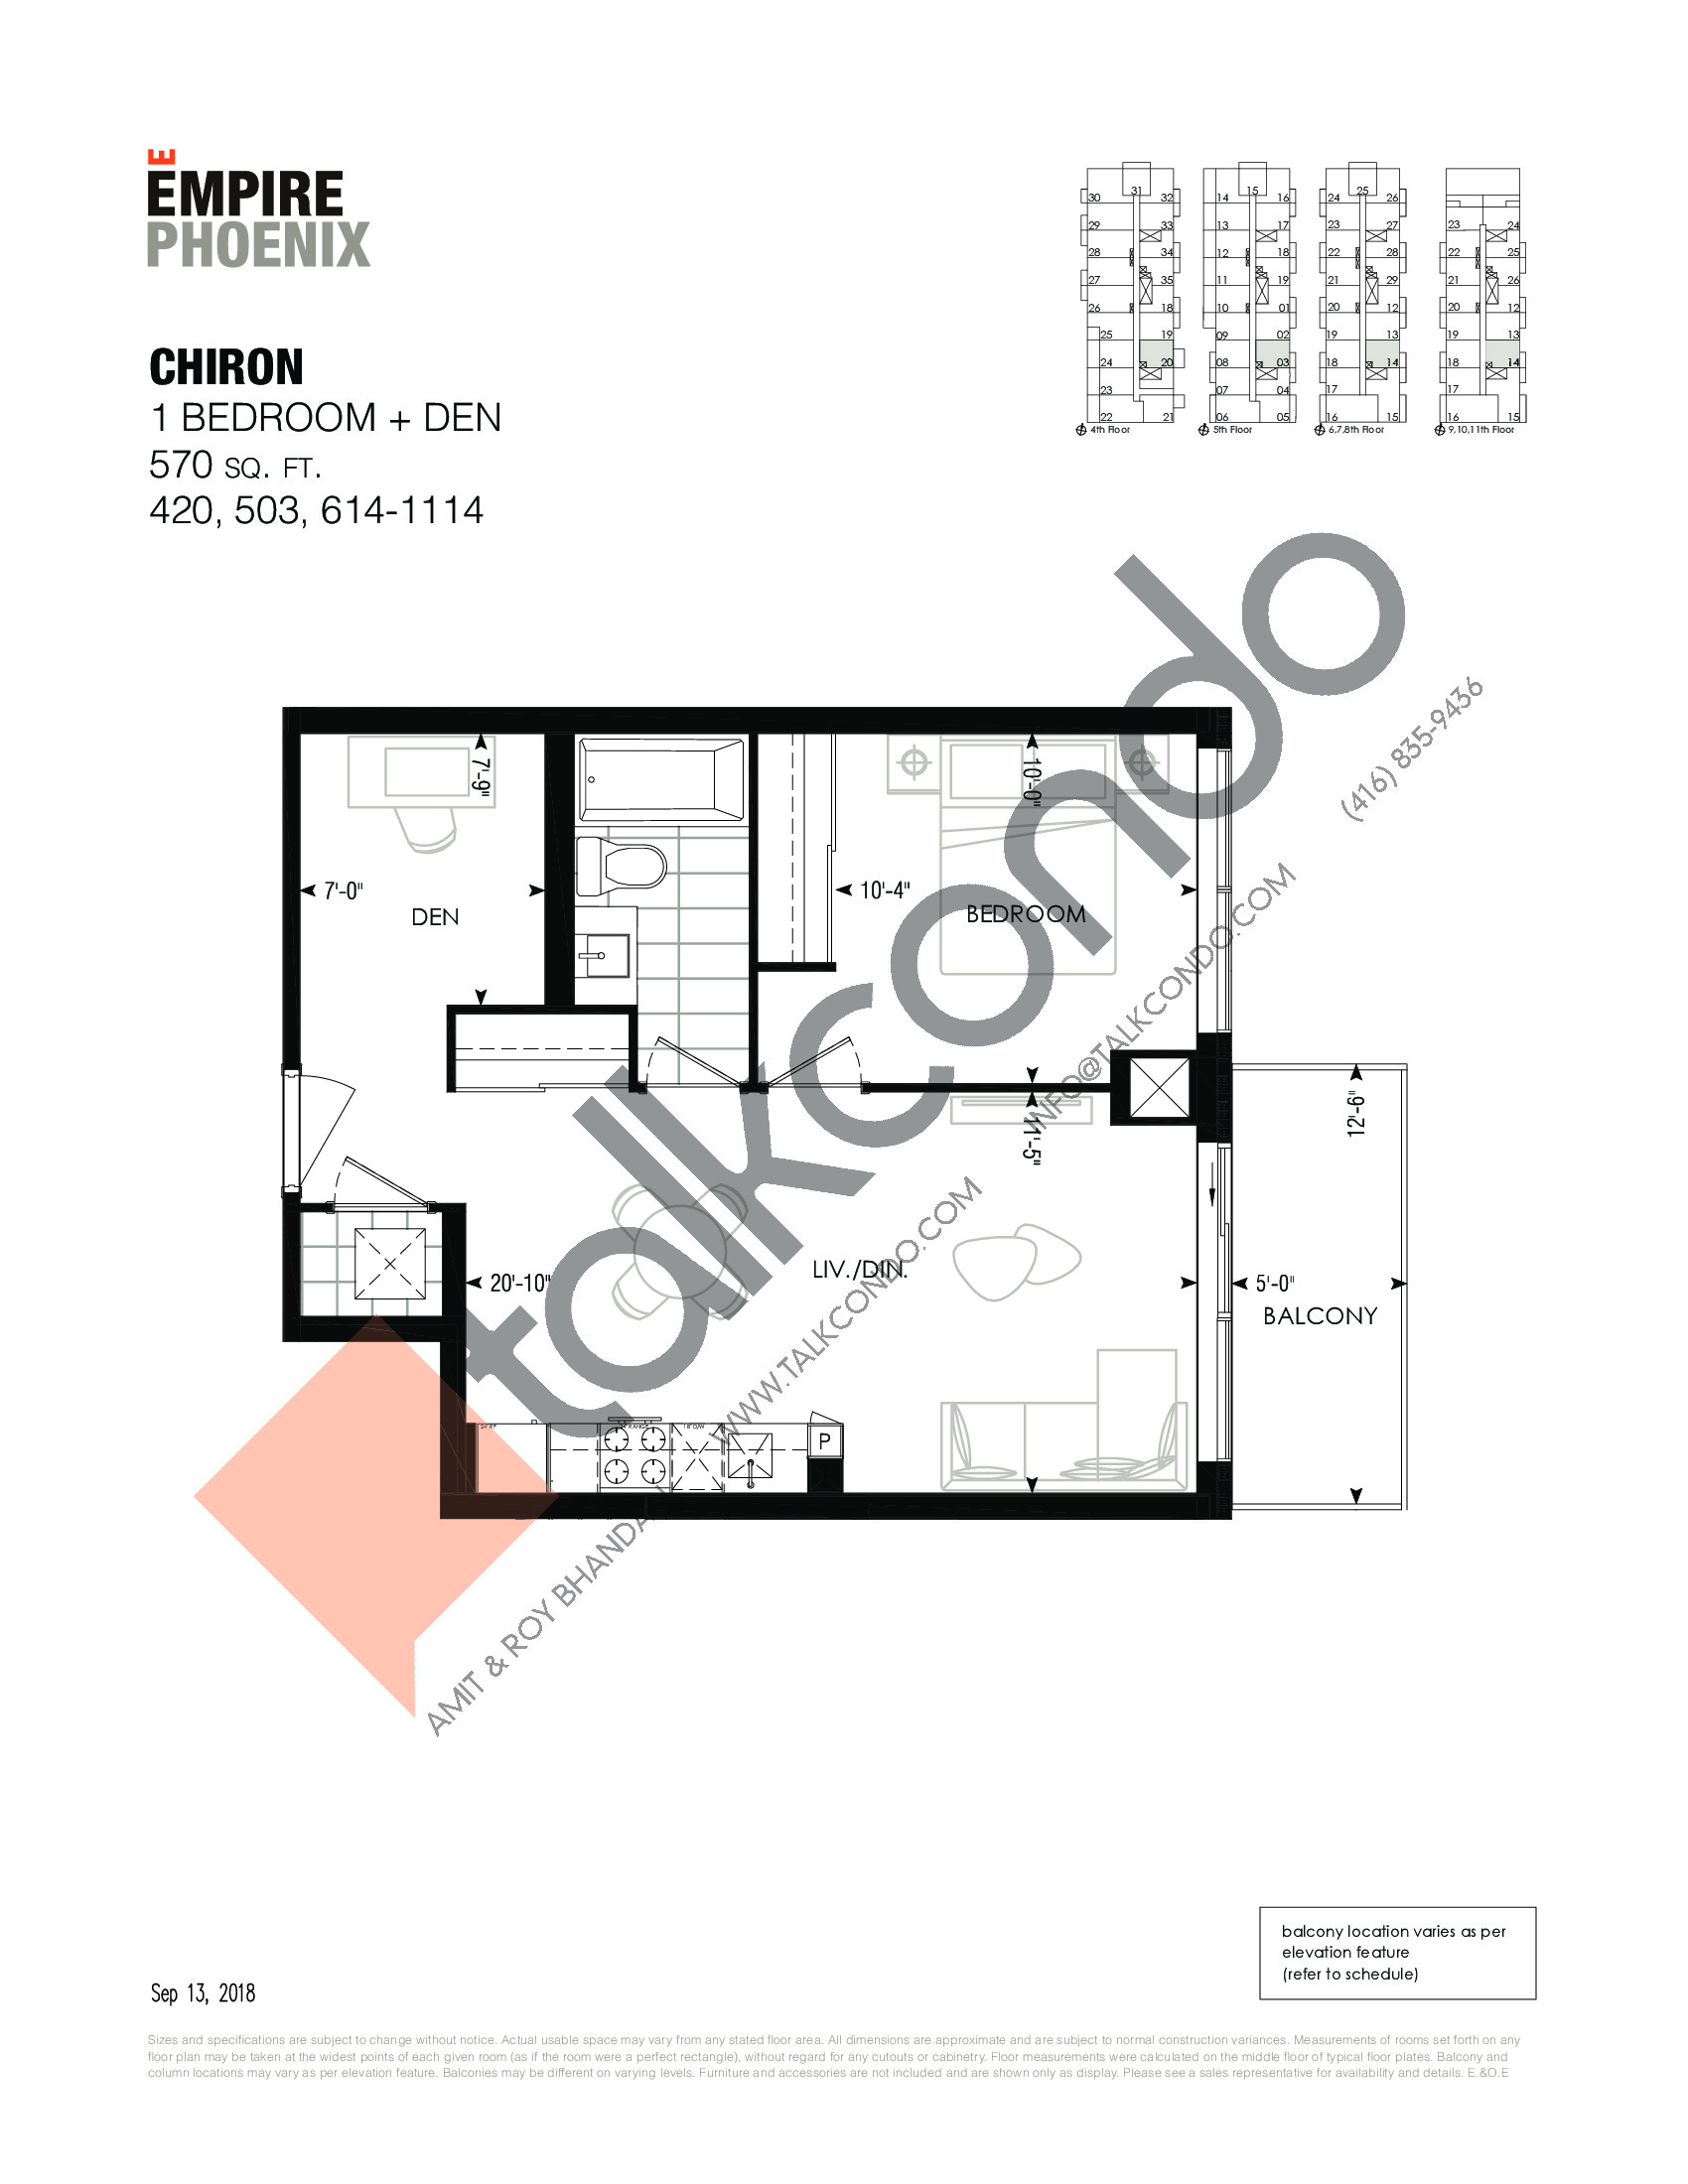 Chiron Floor Plan at Empire Phoenix Phase 2 Condos - 570 sq.ft